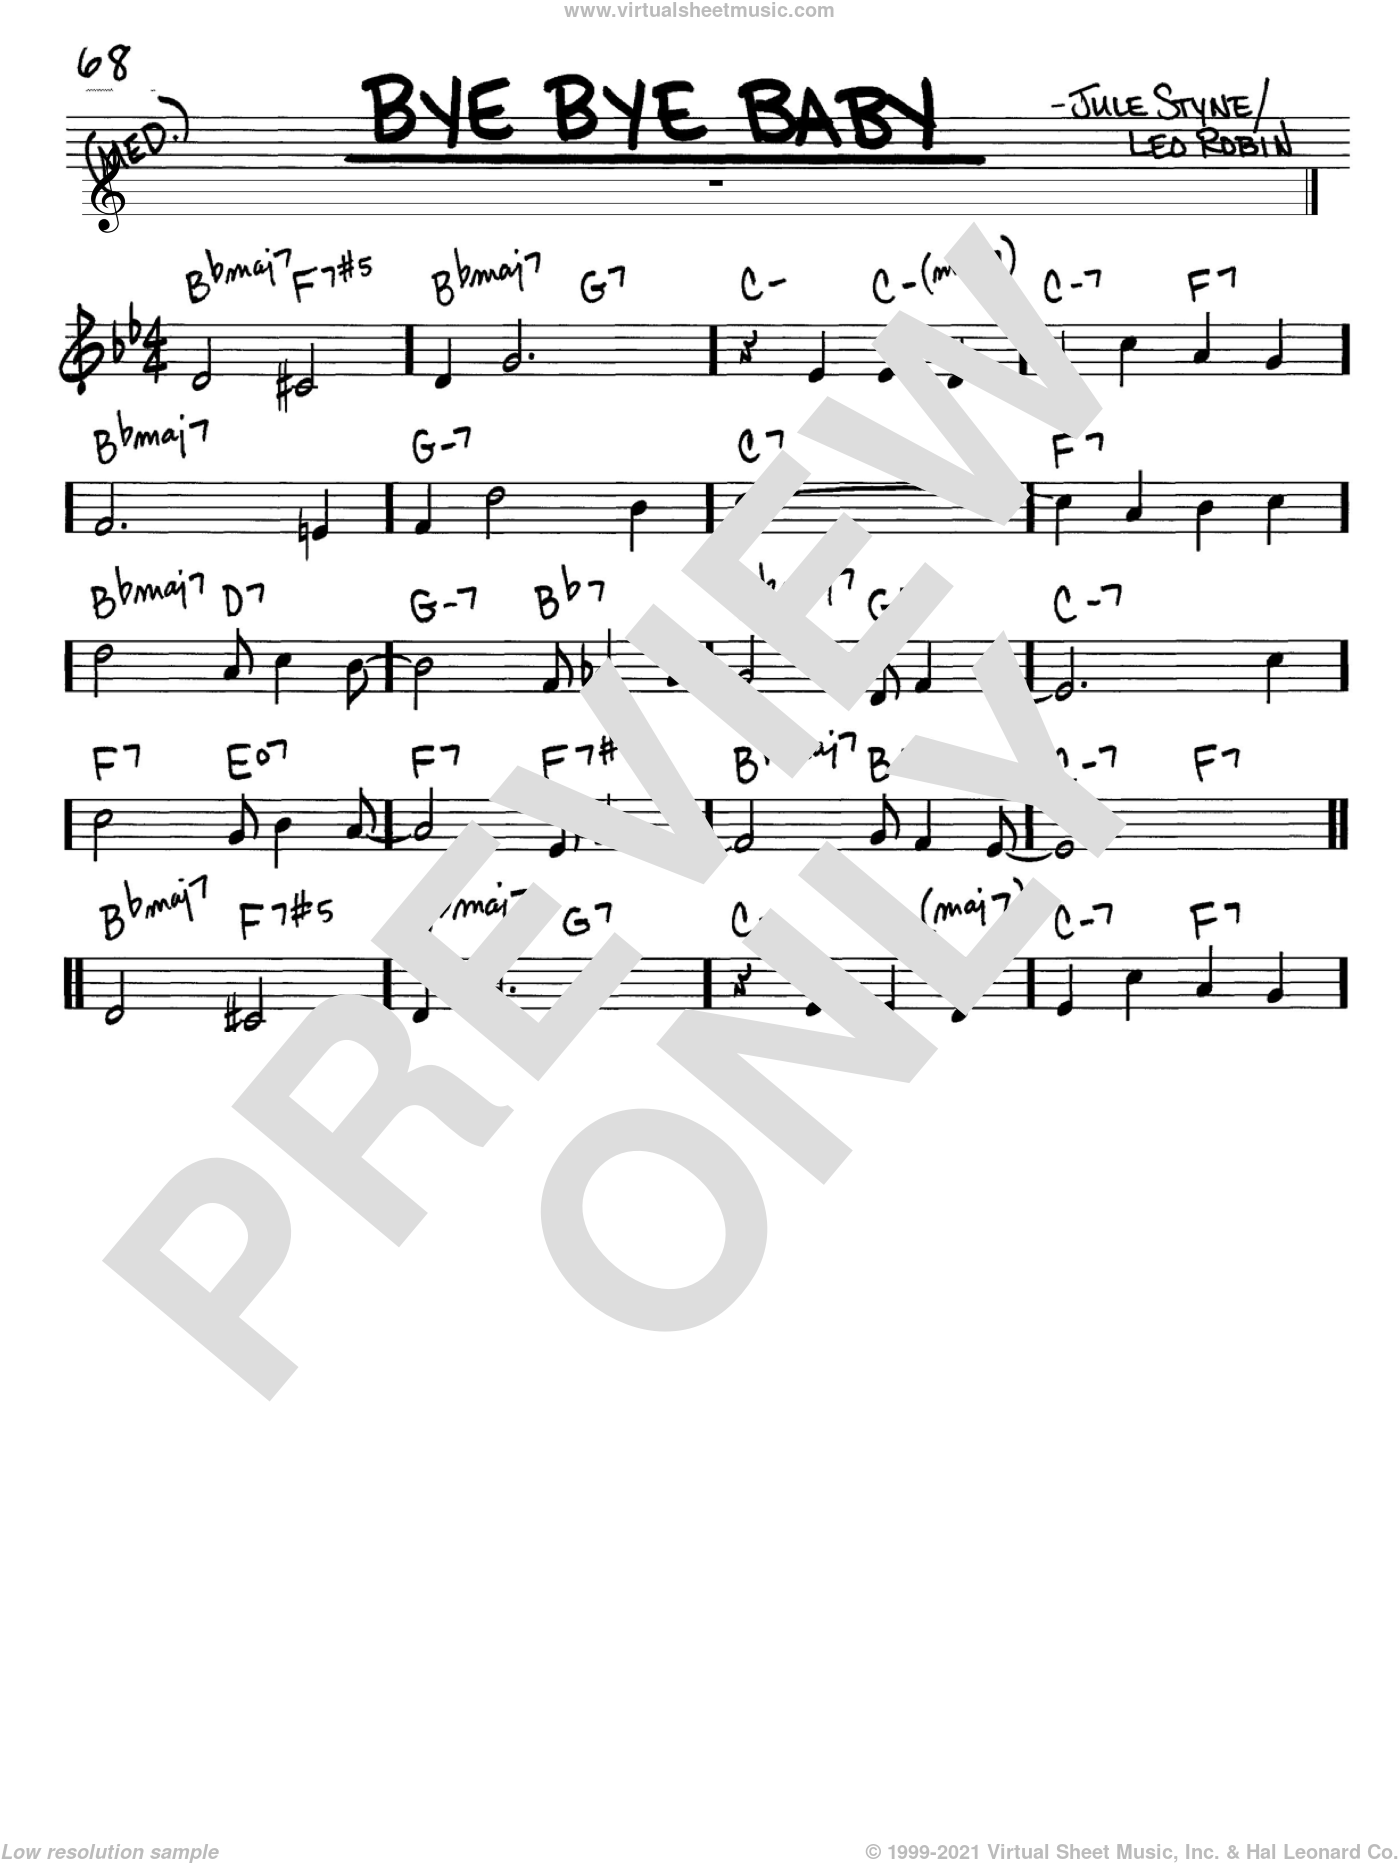 Bye Bye Baby sheet music for voice and other instruments (C) by Leo Robin